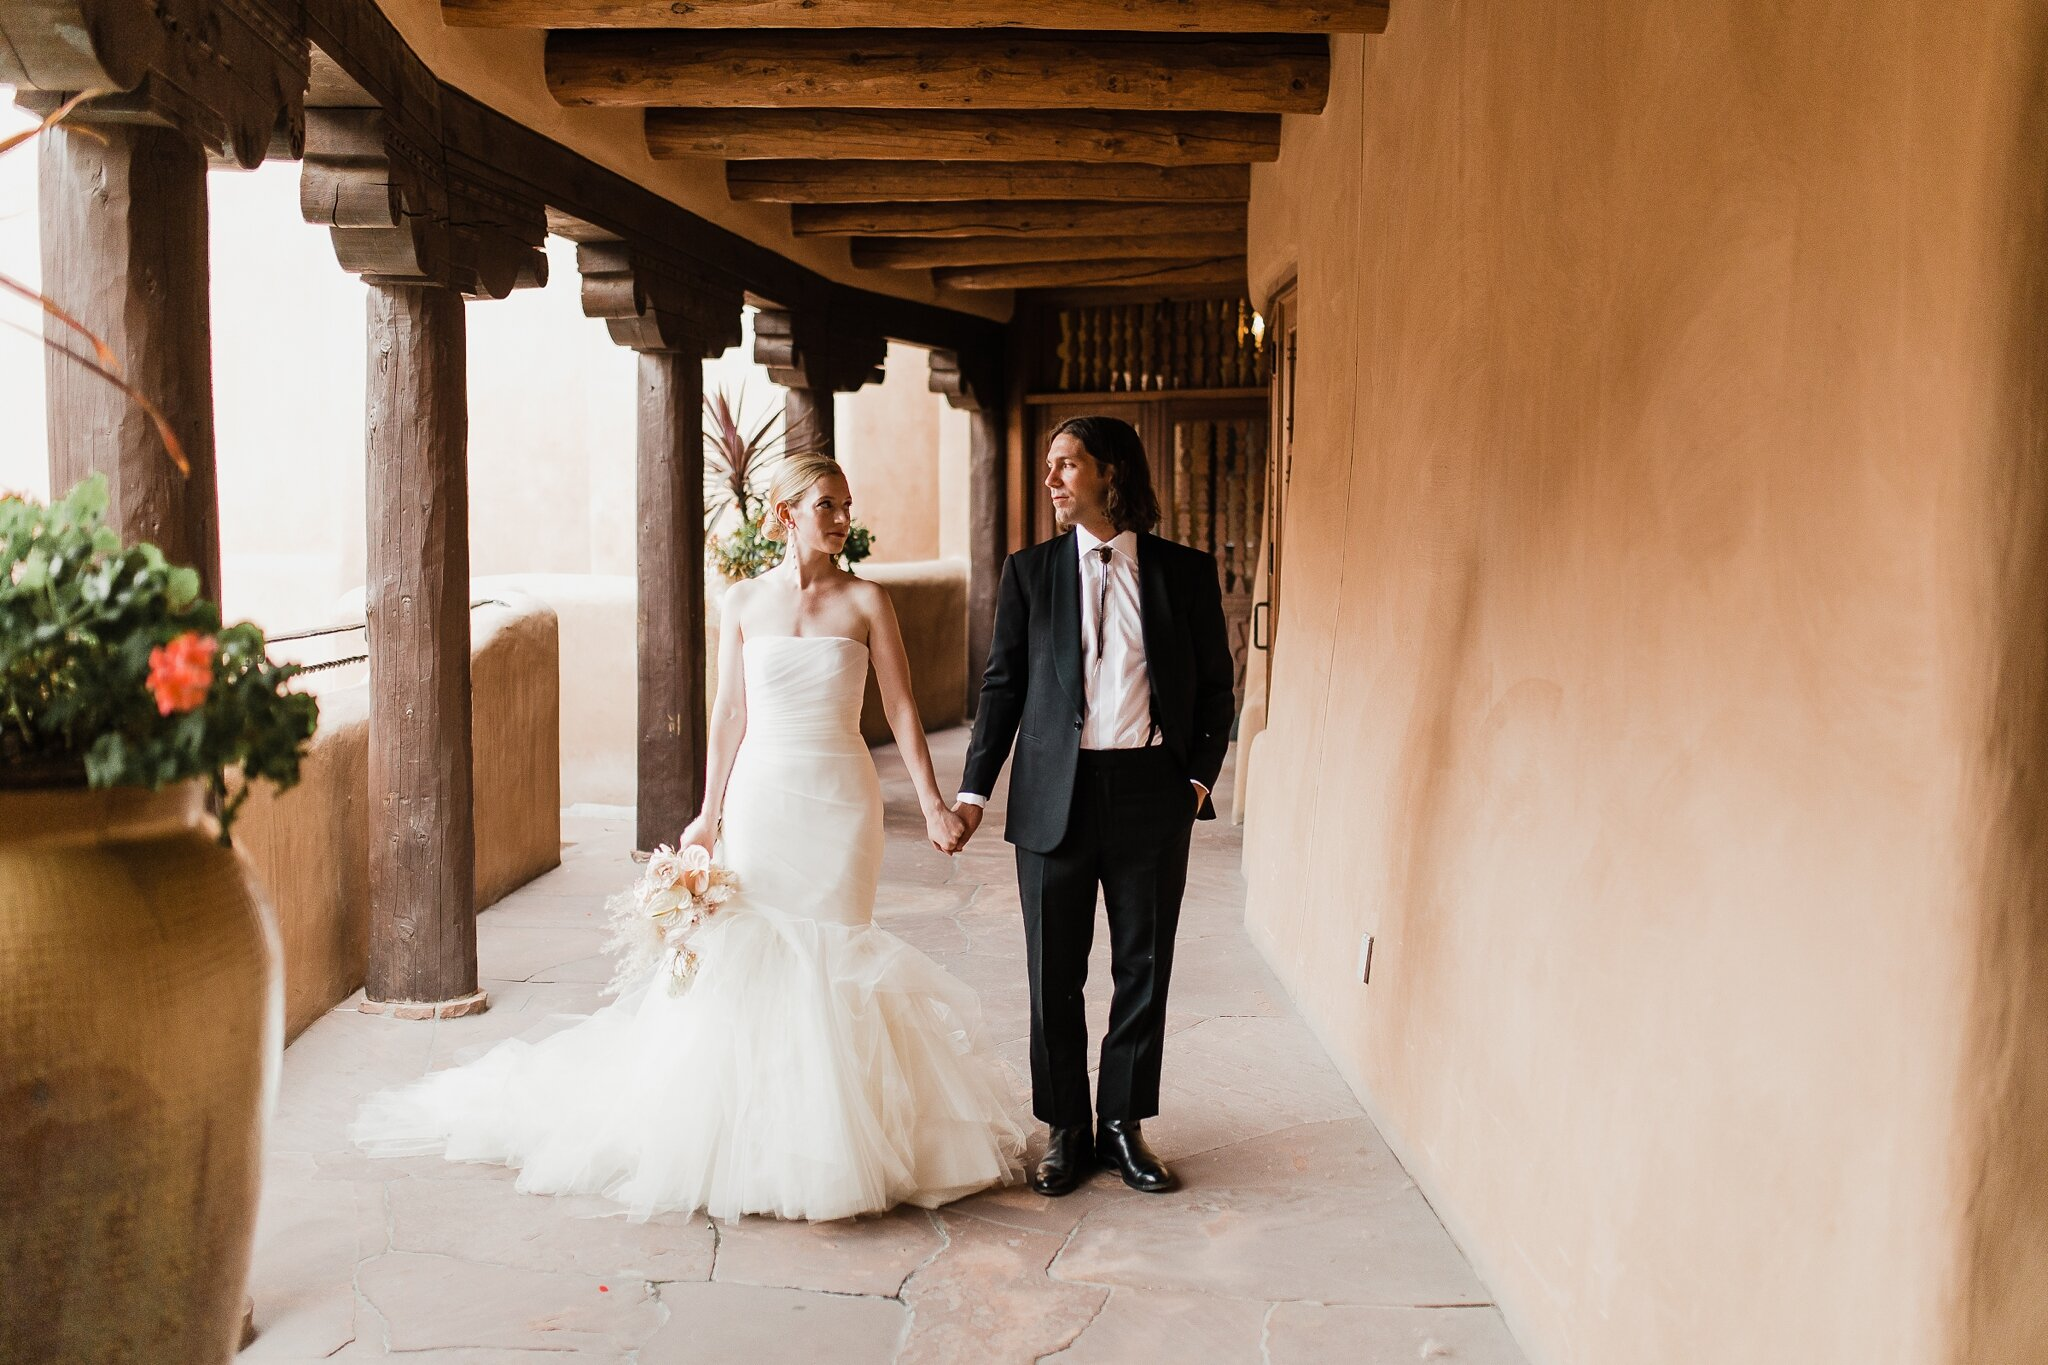 Alicia+lucia+photography+-+albuquerque+wedding+photographer+-+santa+fe+wedding+photography+-+new+mexico+wedding+photographer+-+new+mexico+wedding+-+la+fonda+wedding+-+la+fonda+on+the+plaza+-+santa+fe+wedding+-+brooklyn+bride_0069.jpg